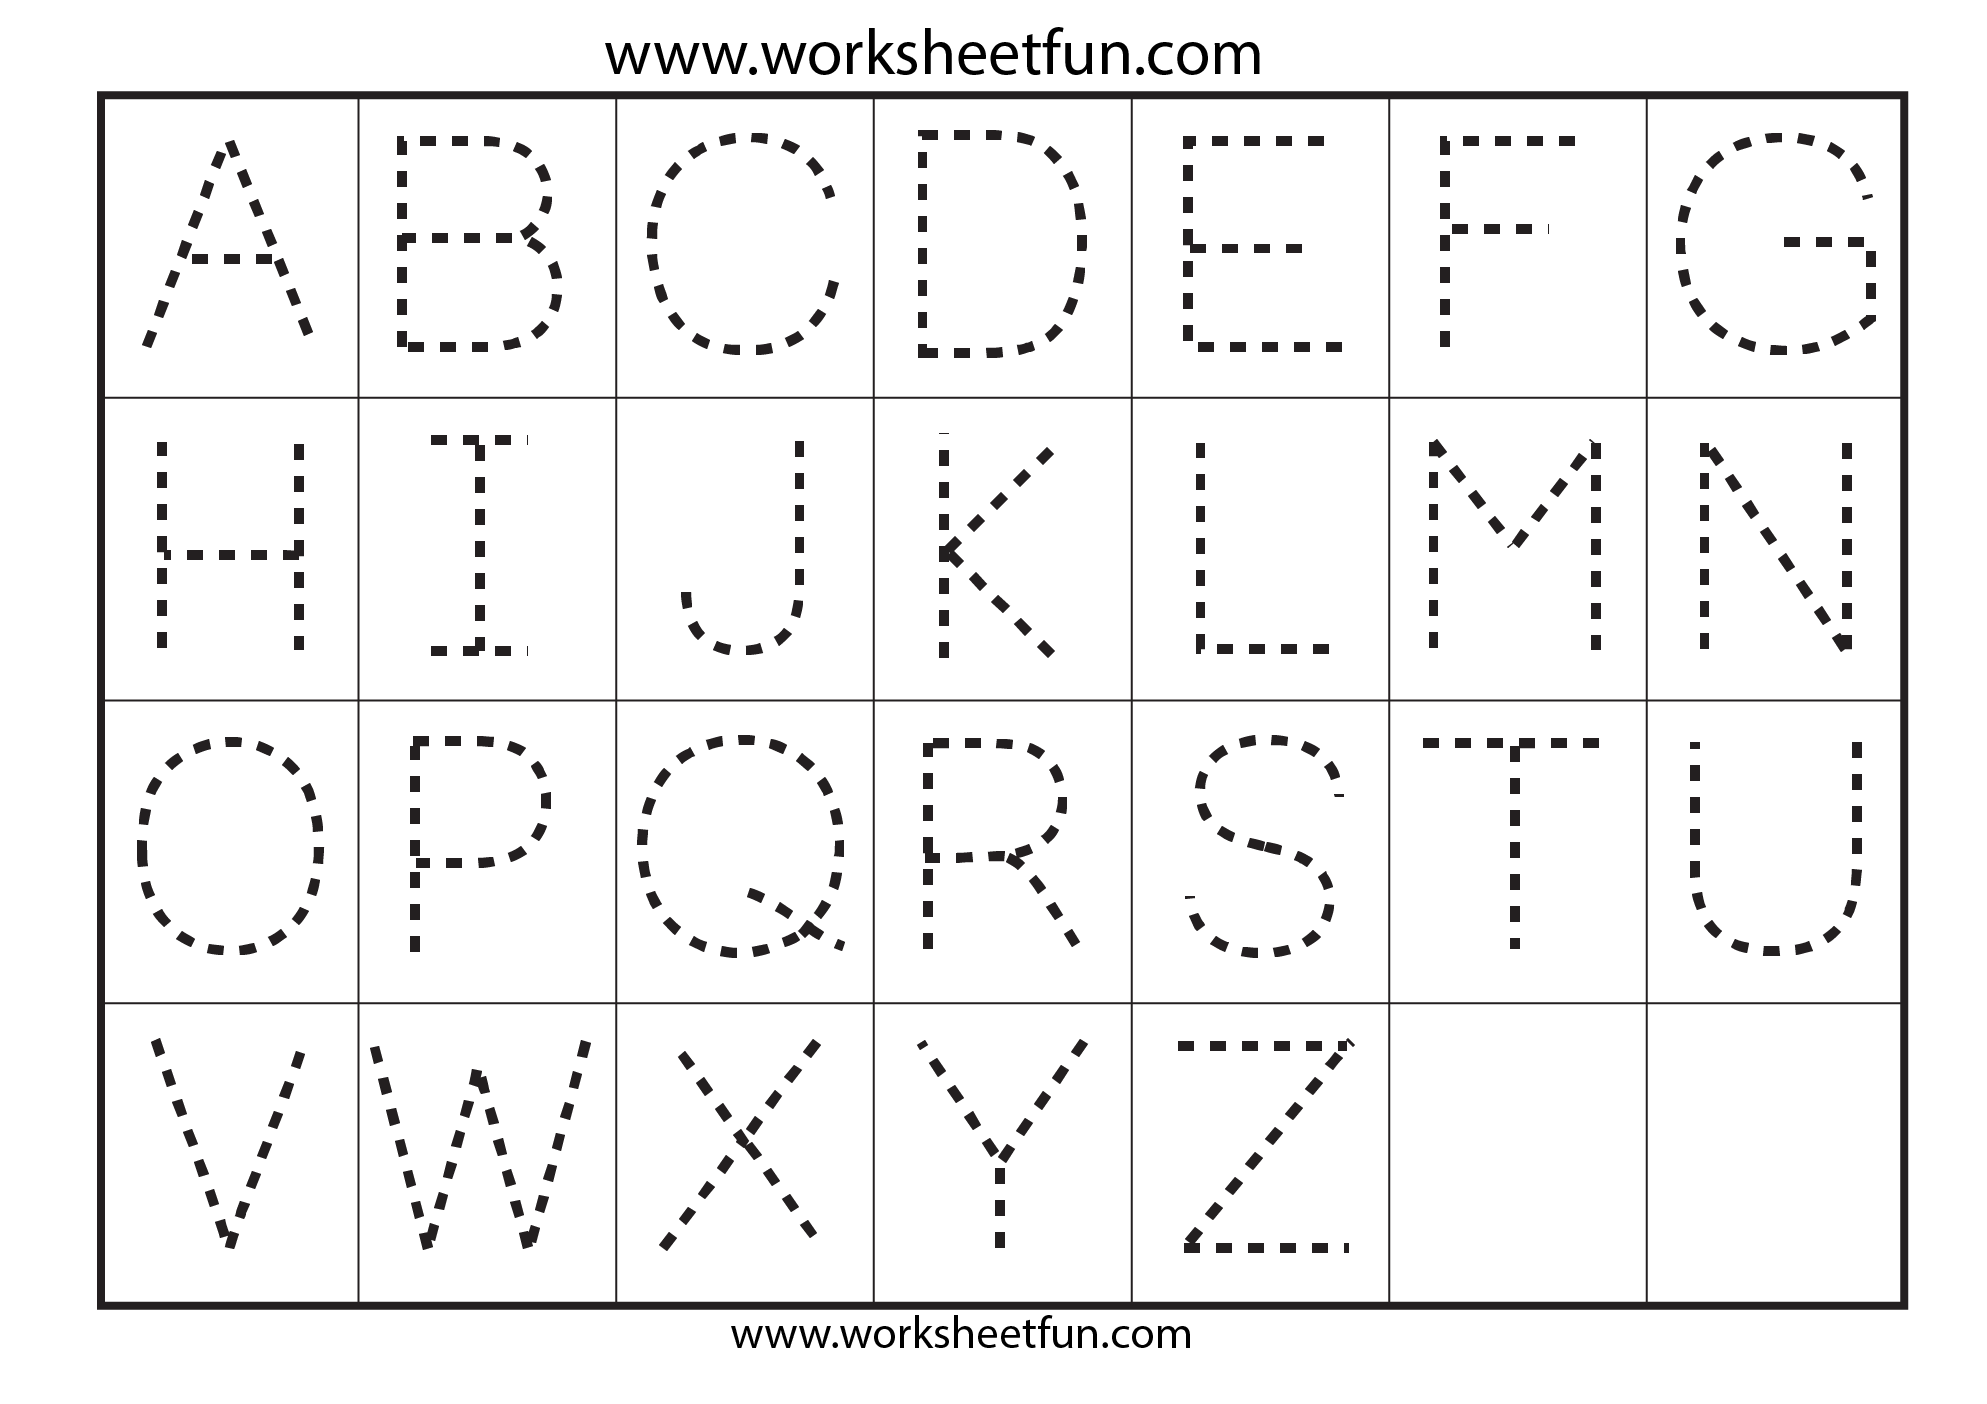 Printables Printable Abc Worksheets For Pre-k alphabet worksheets pre k intrepidpath printable tracing for sheets